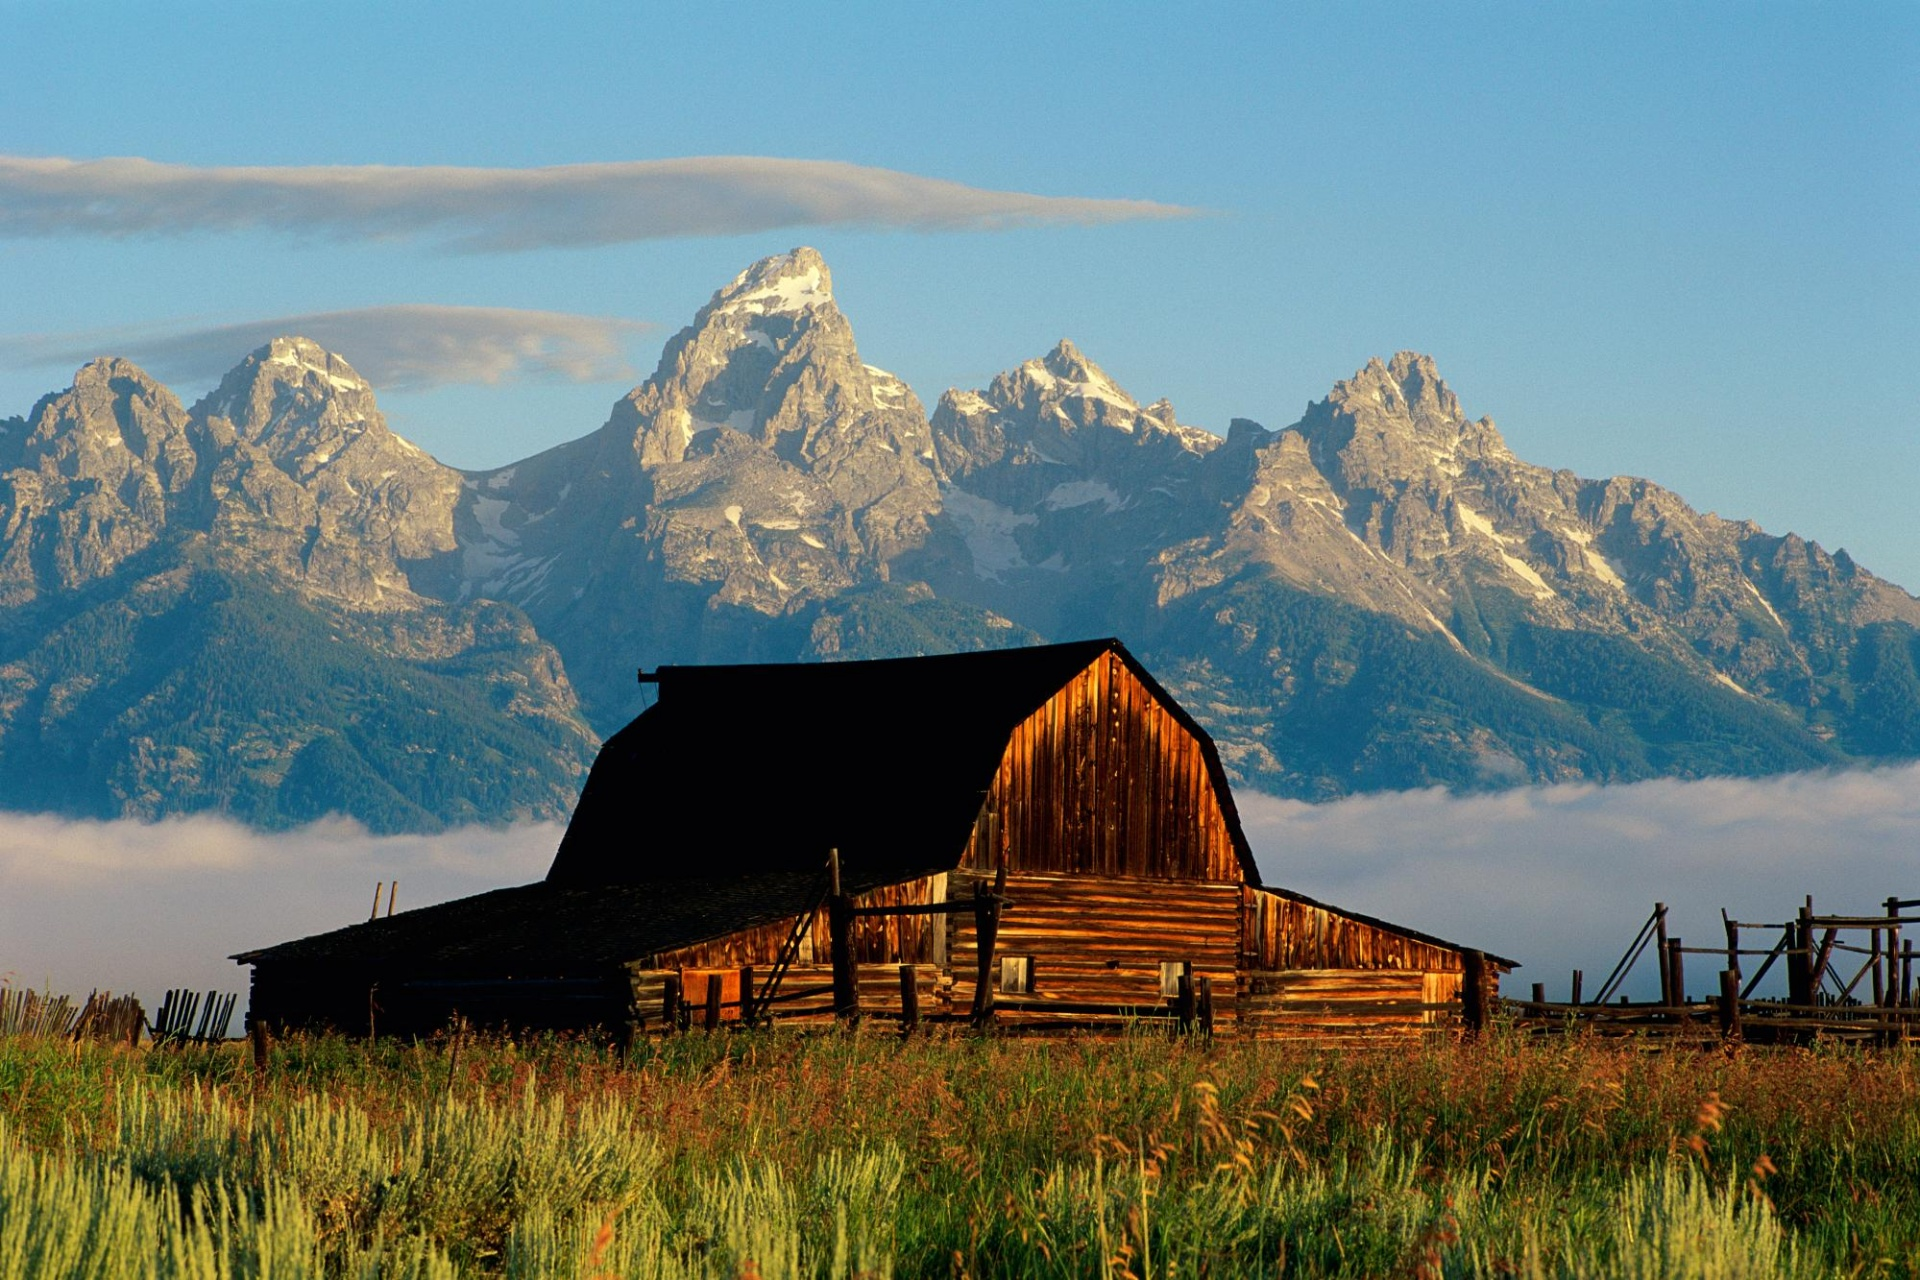 1920x1200 Mountains and cabin desktop PC and Mac wallpaper 1920x1280